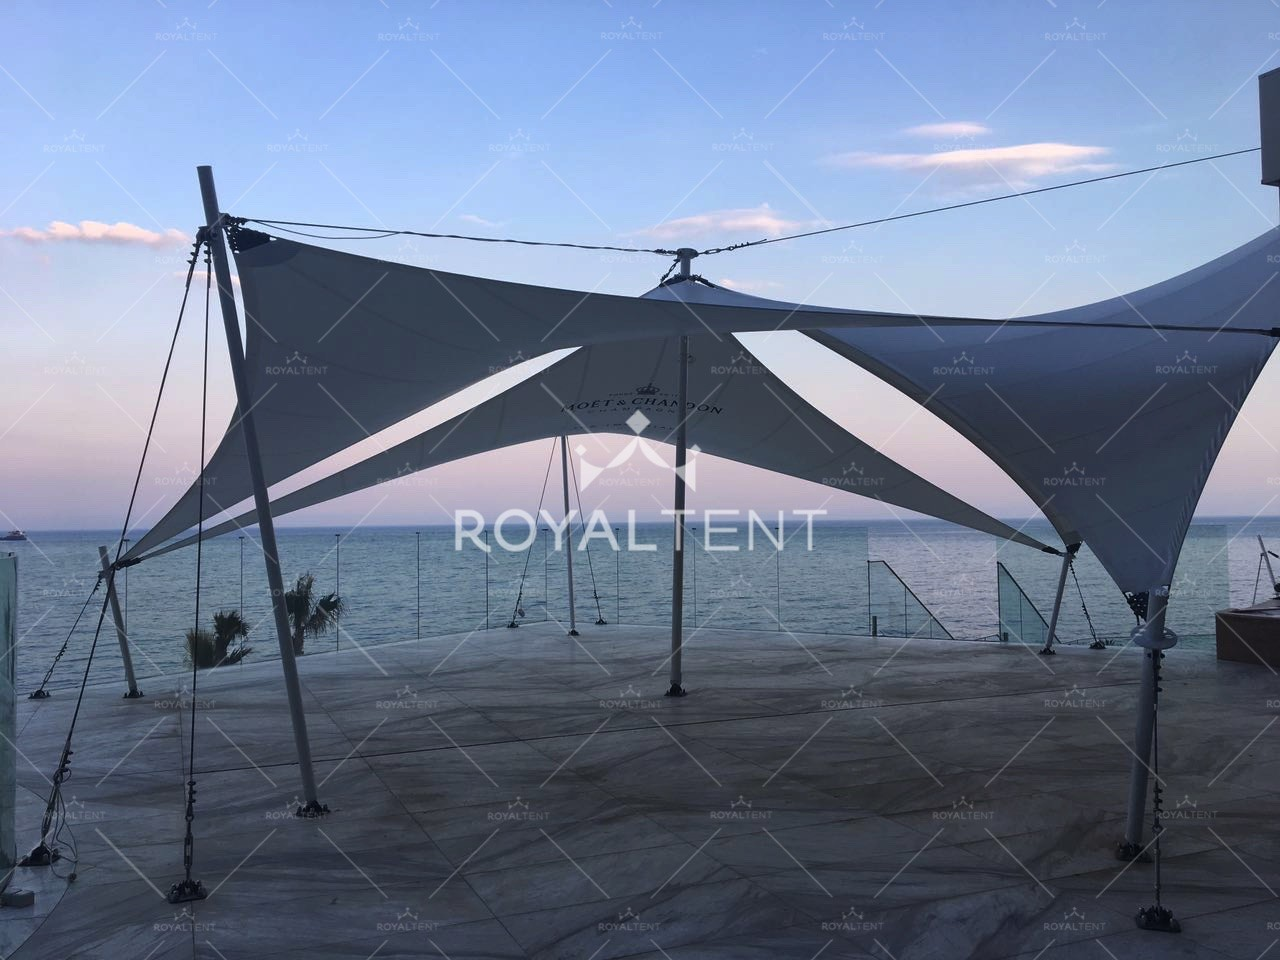 https://royaltent.me/houses_images/tent3_2_200116100653.jpg